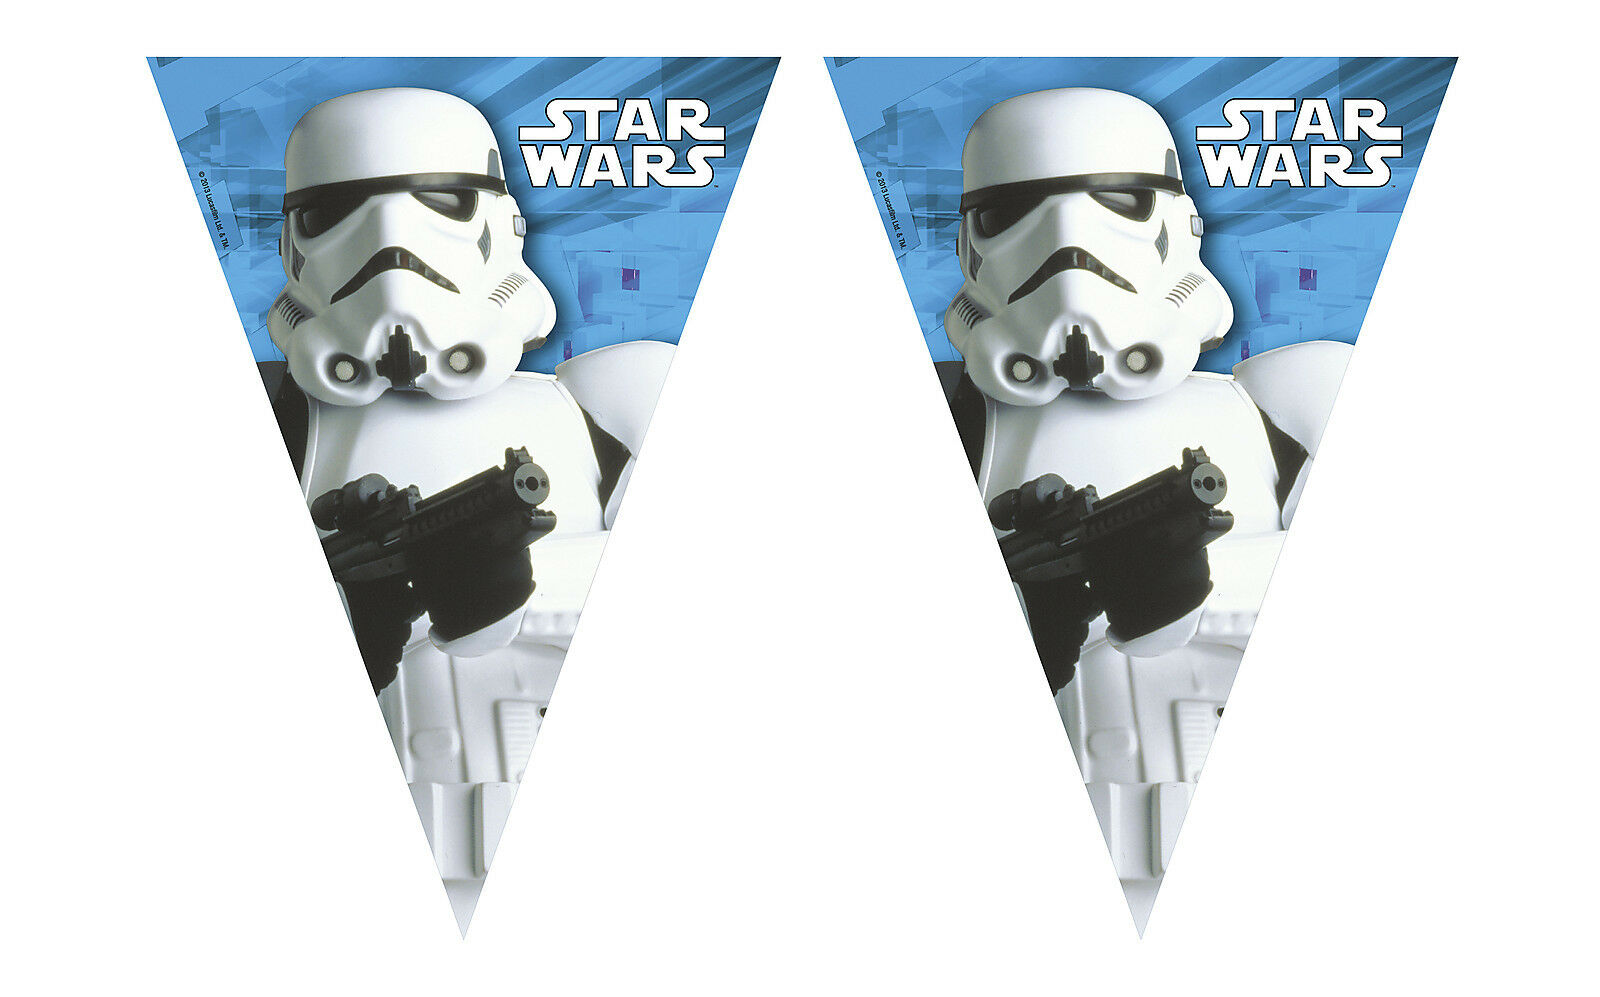 Unique Party 71981-2.3m Star Wars Bunting Banner